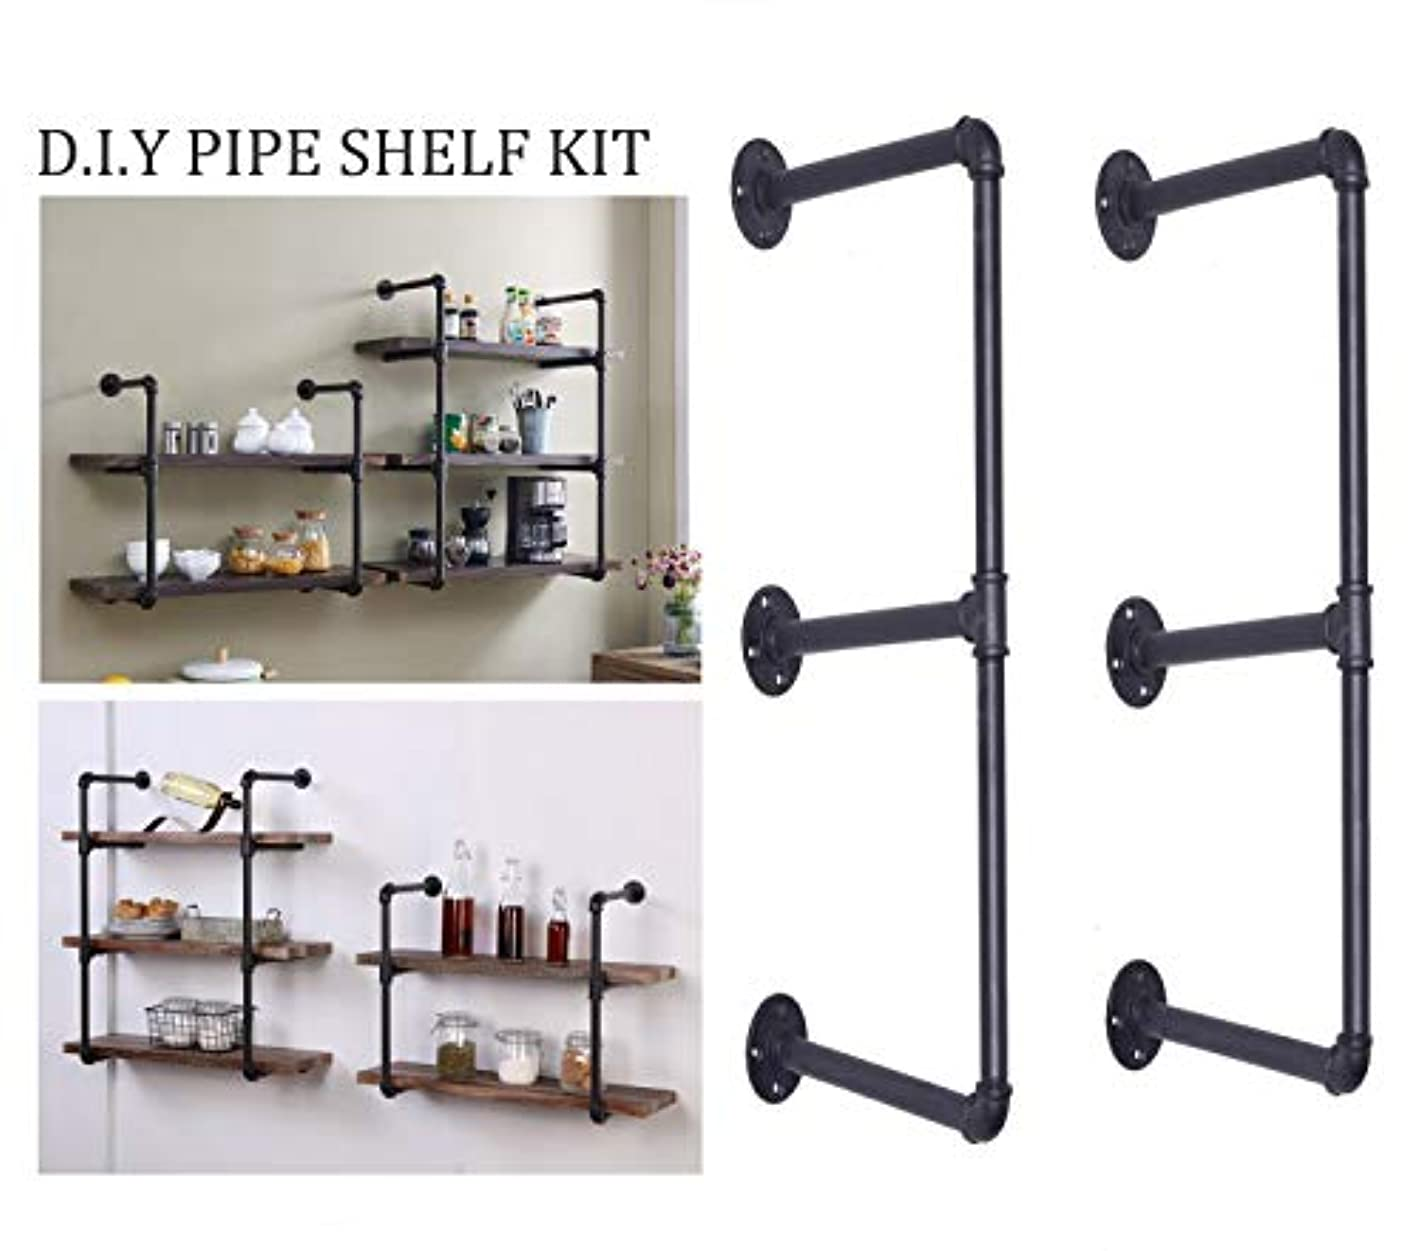 Articial 3-Tier DIY Industrial Pipe Shelf Kit Hanging Bookshelf for Wall Open Pipe Shelving Black (3 Tiers)